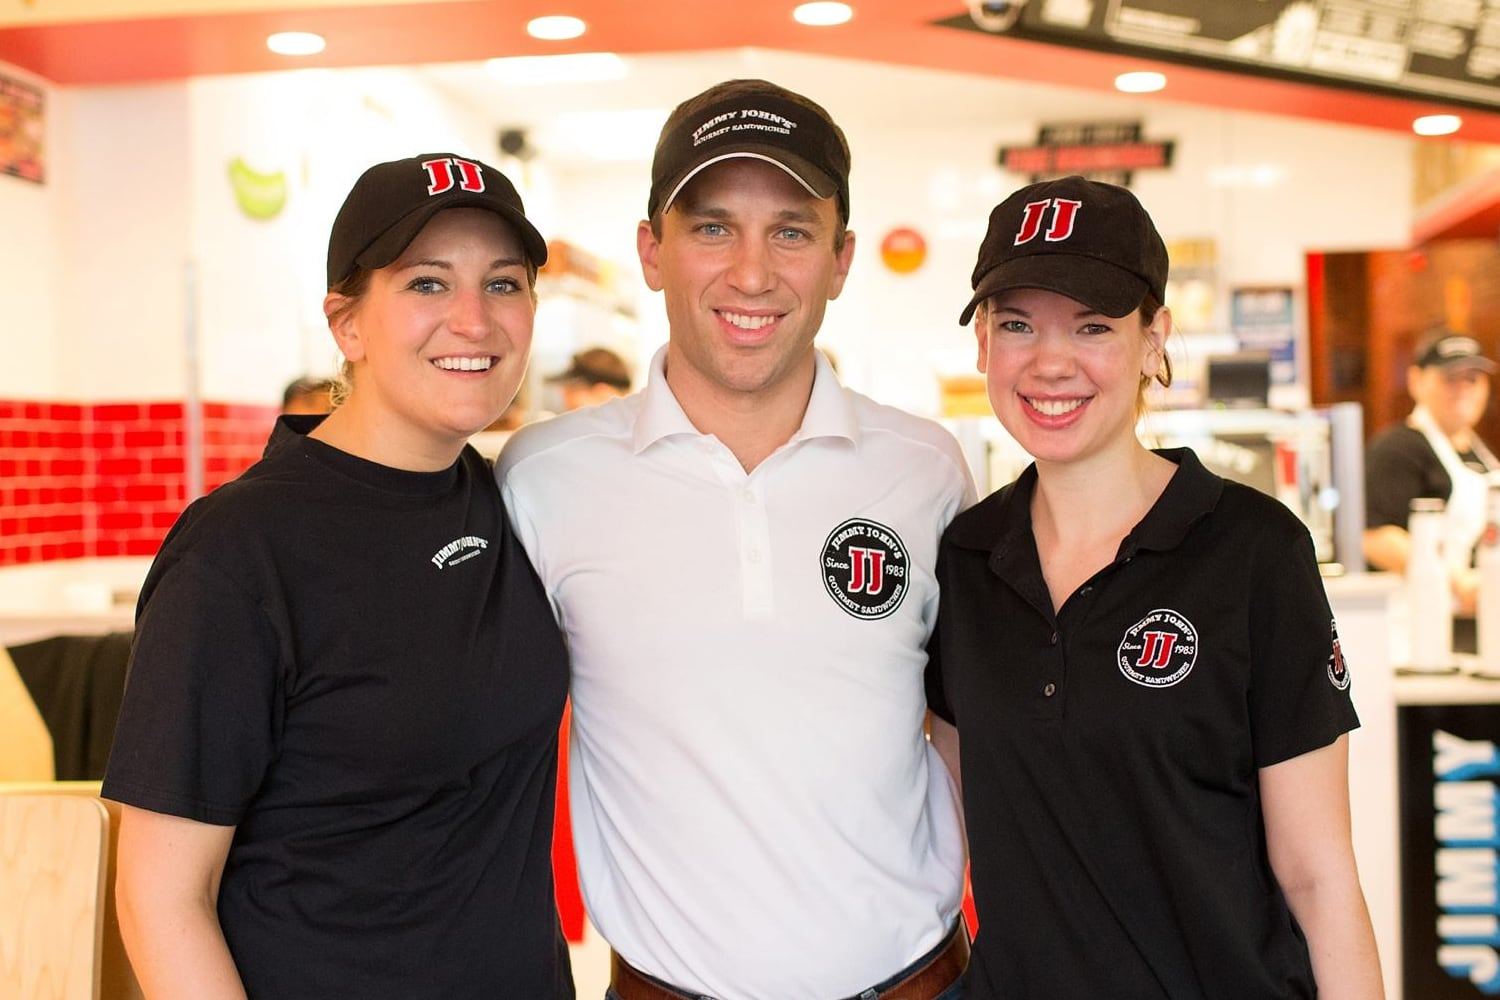 employees of jimmy johns